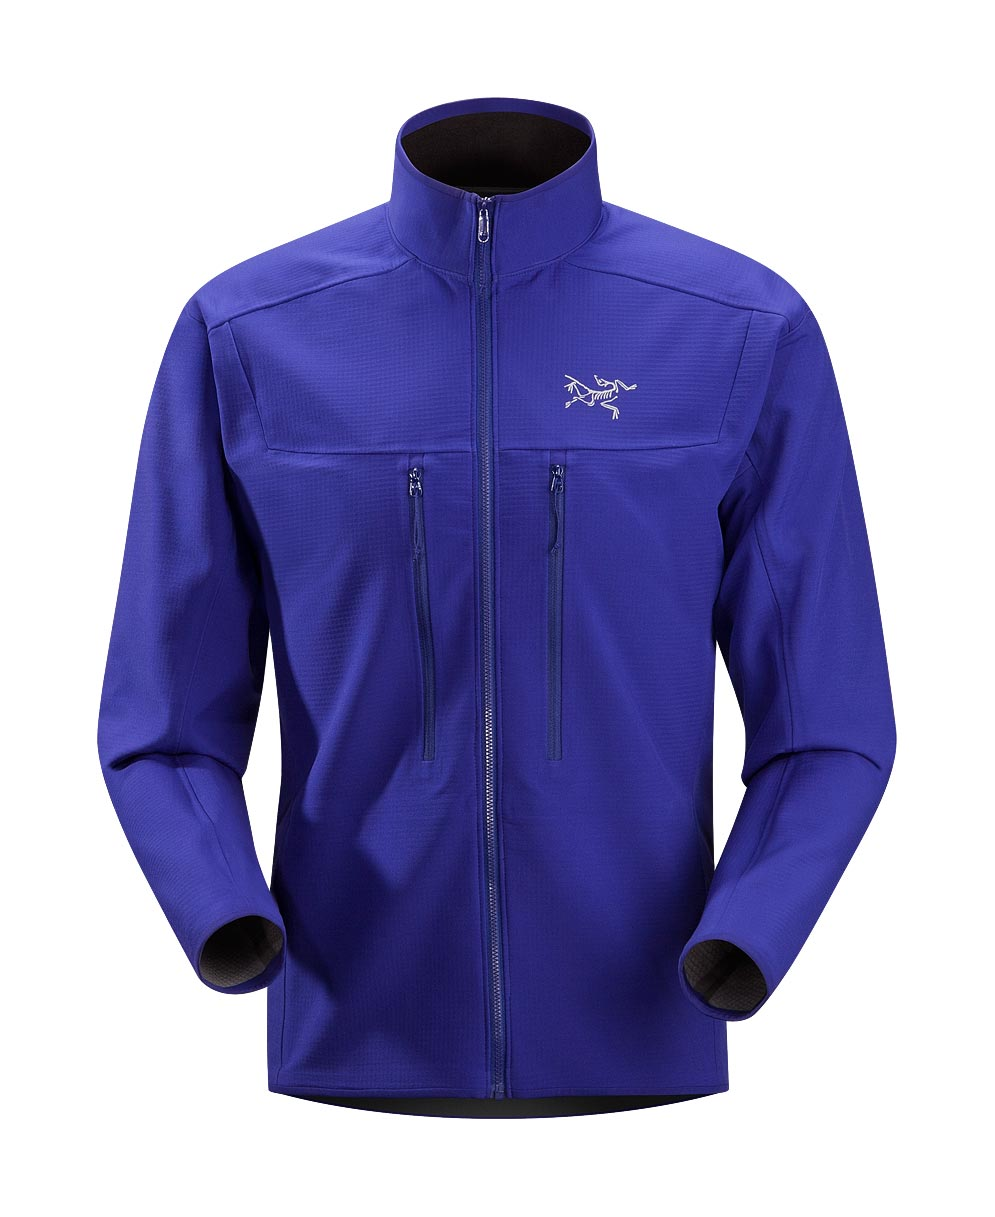 Arcteryx Jackets Men Squid Ink Acto MX Jacket